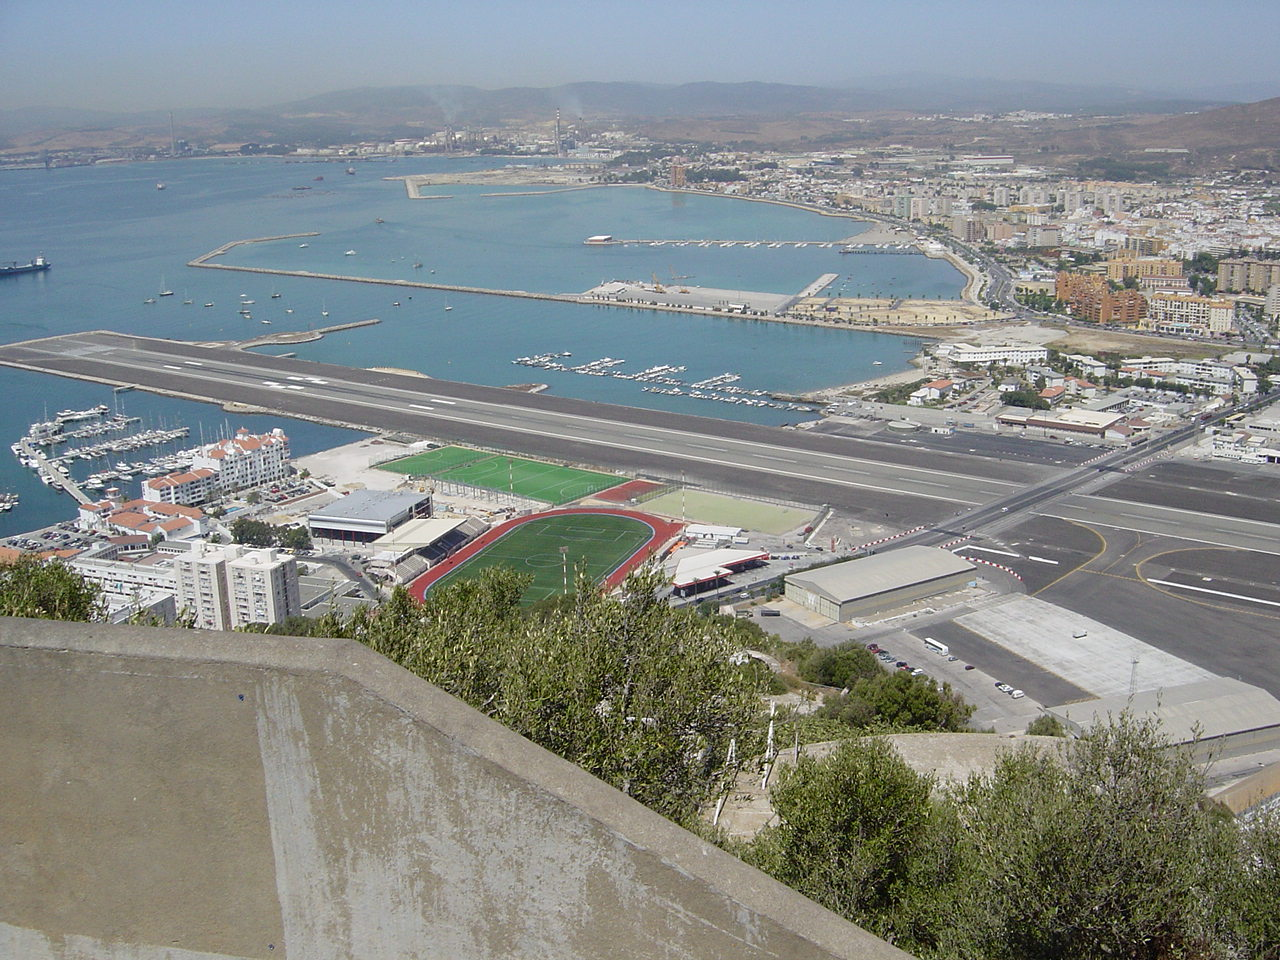 Gibraltar – Travel guide at Wikivoyage